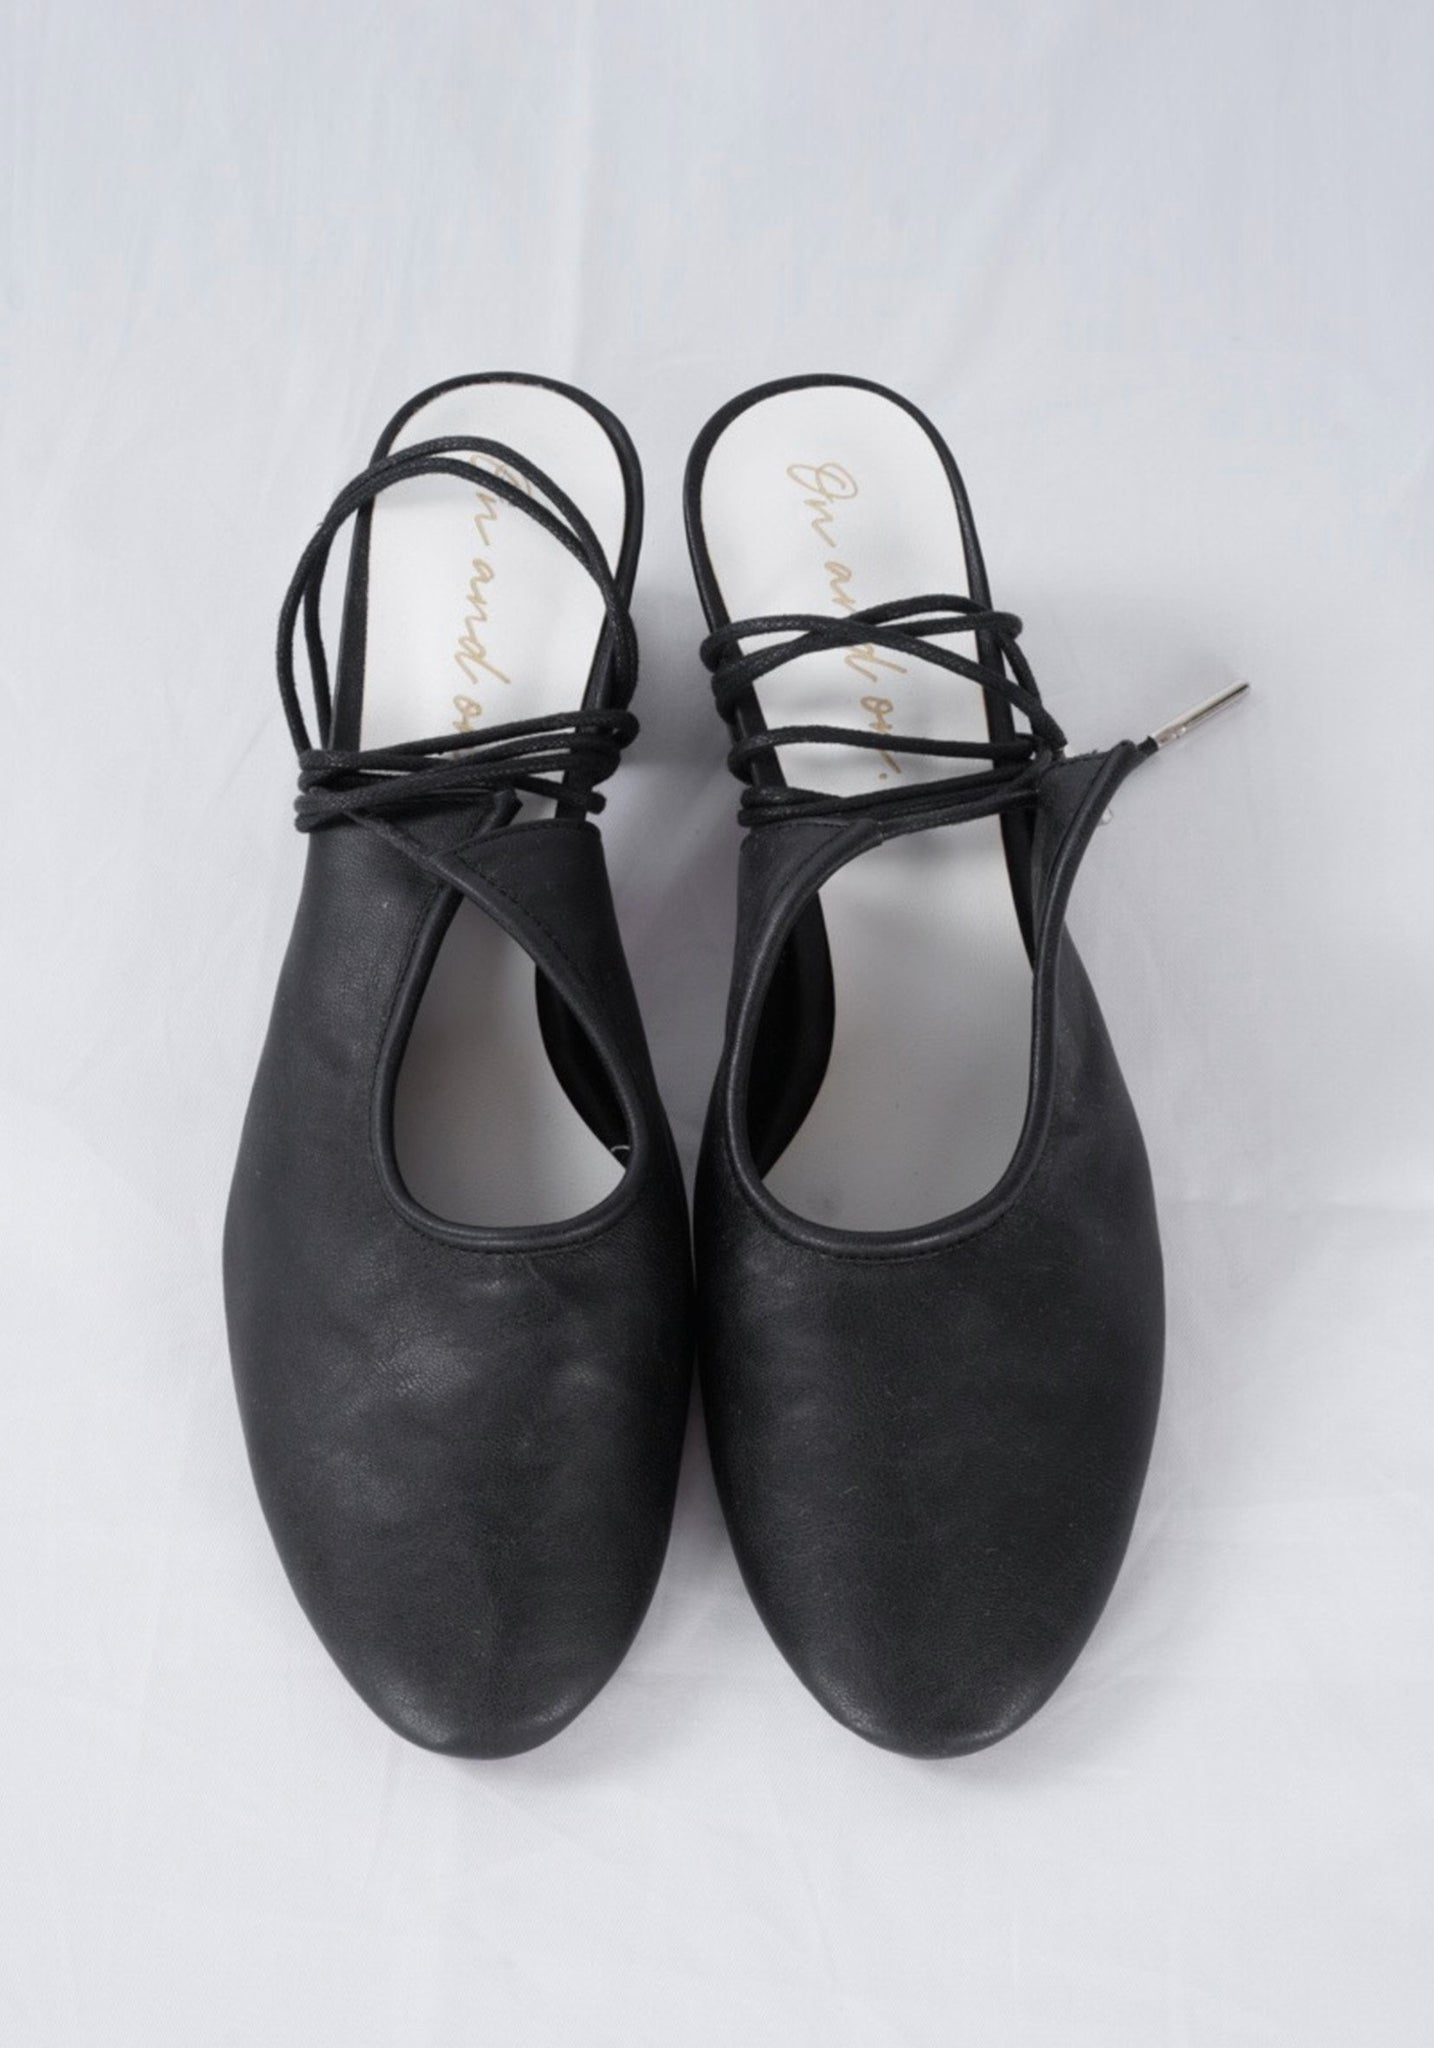 Sample Shoes - Black Lace Up Heels Mules - whoami